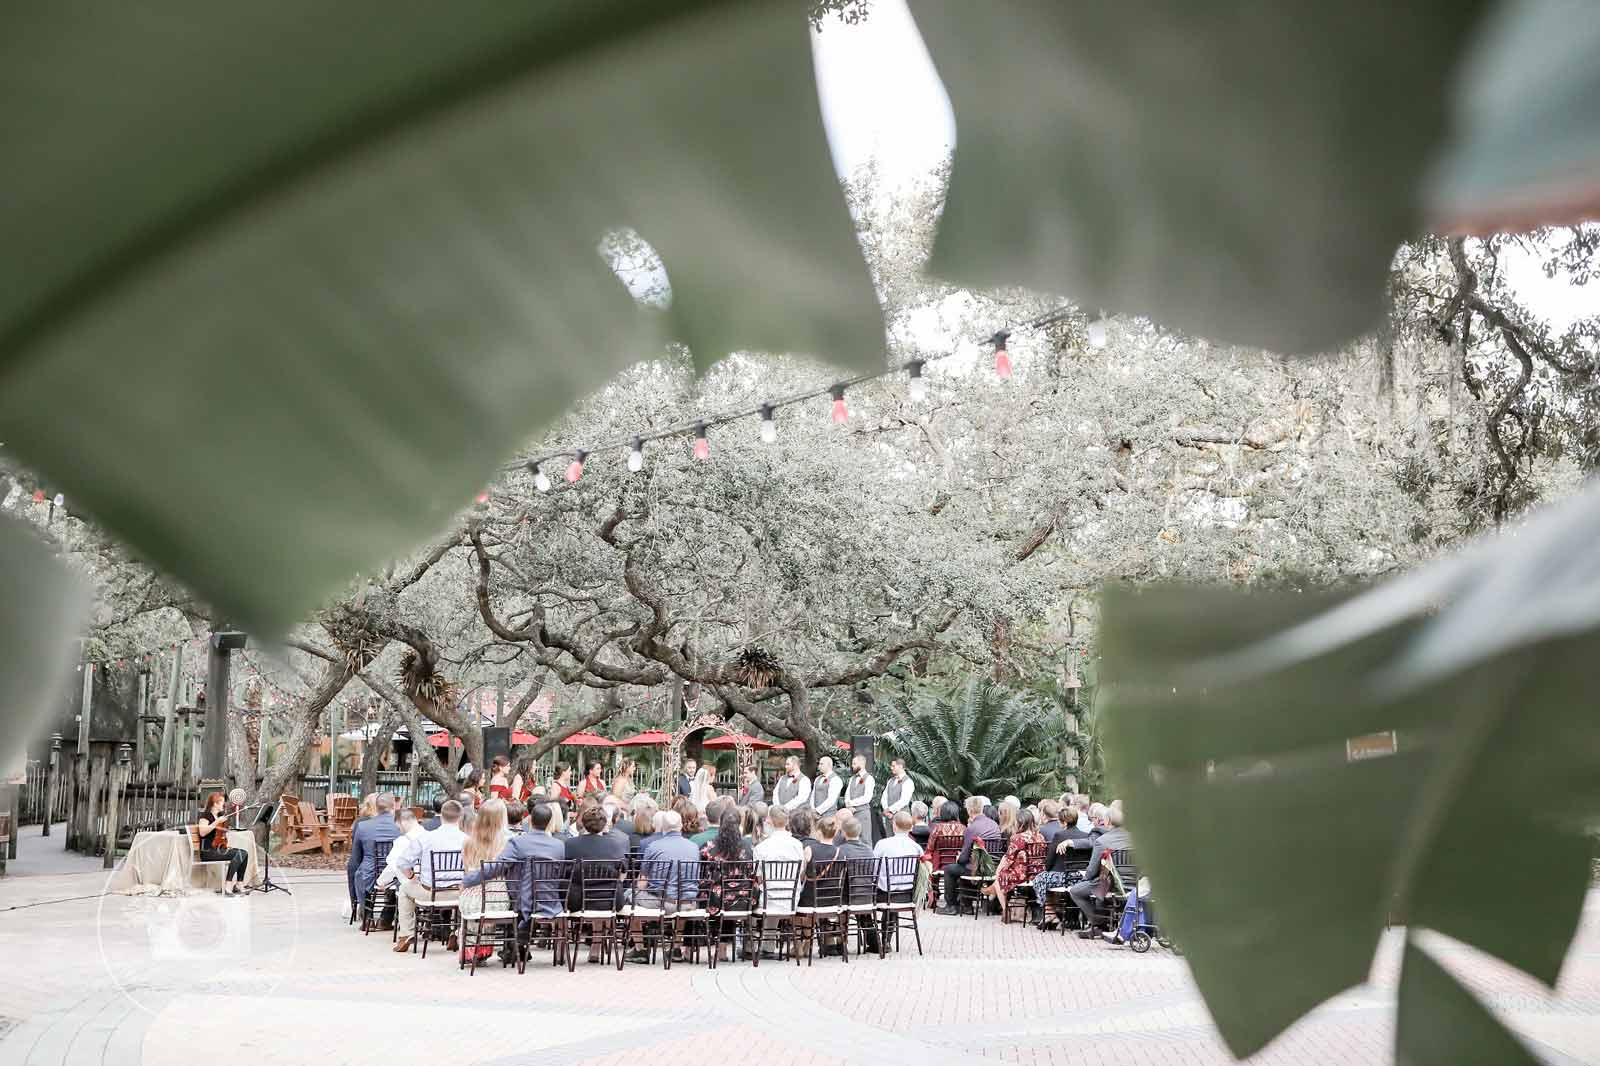 An outdoor wedding ceremony at the Zoo's Africa Circle